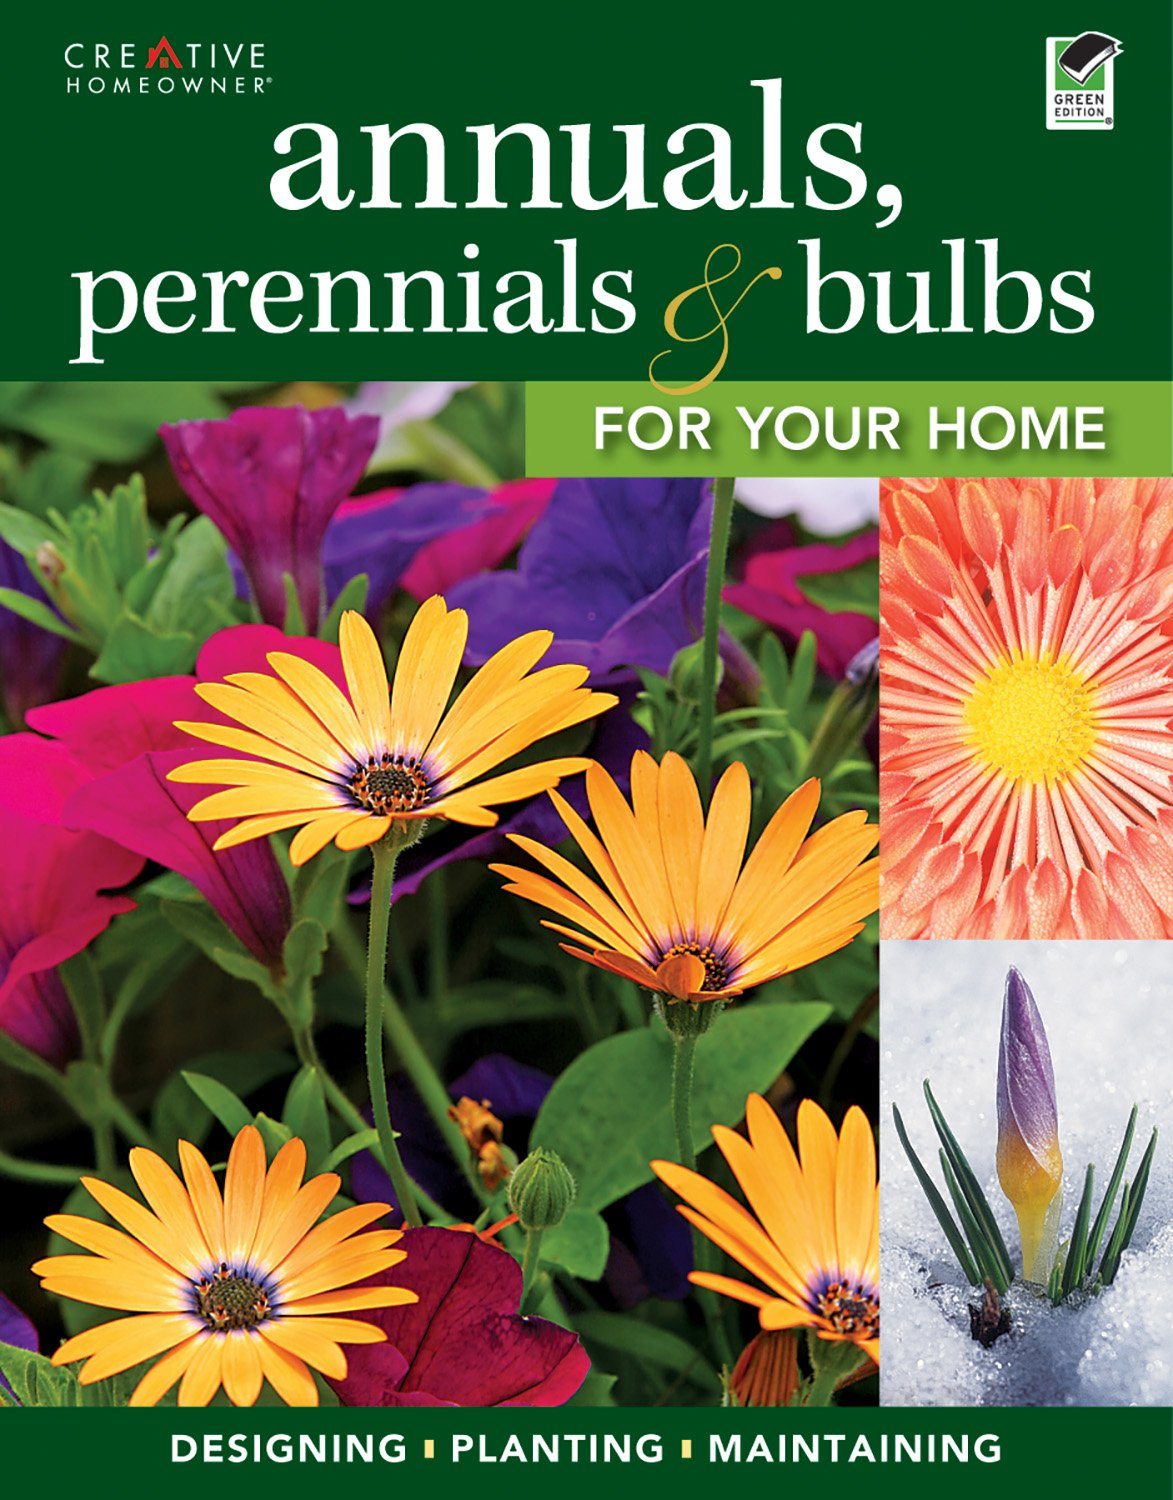 Annuals perennials bulbs for your home designing planting annuals perennials bulbs for your home designing planting maintaining your flower garden gardening editors of creative homeowner izmirmasajfo